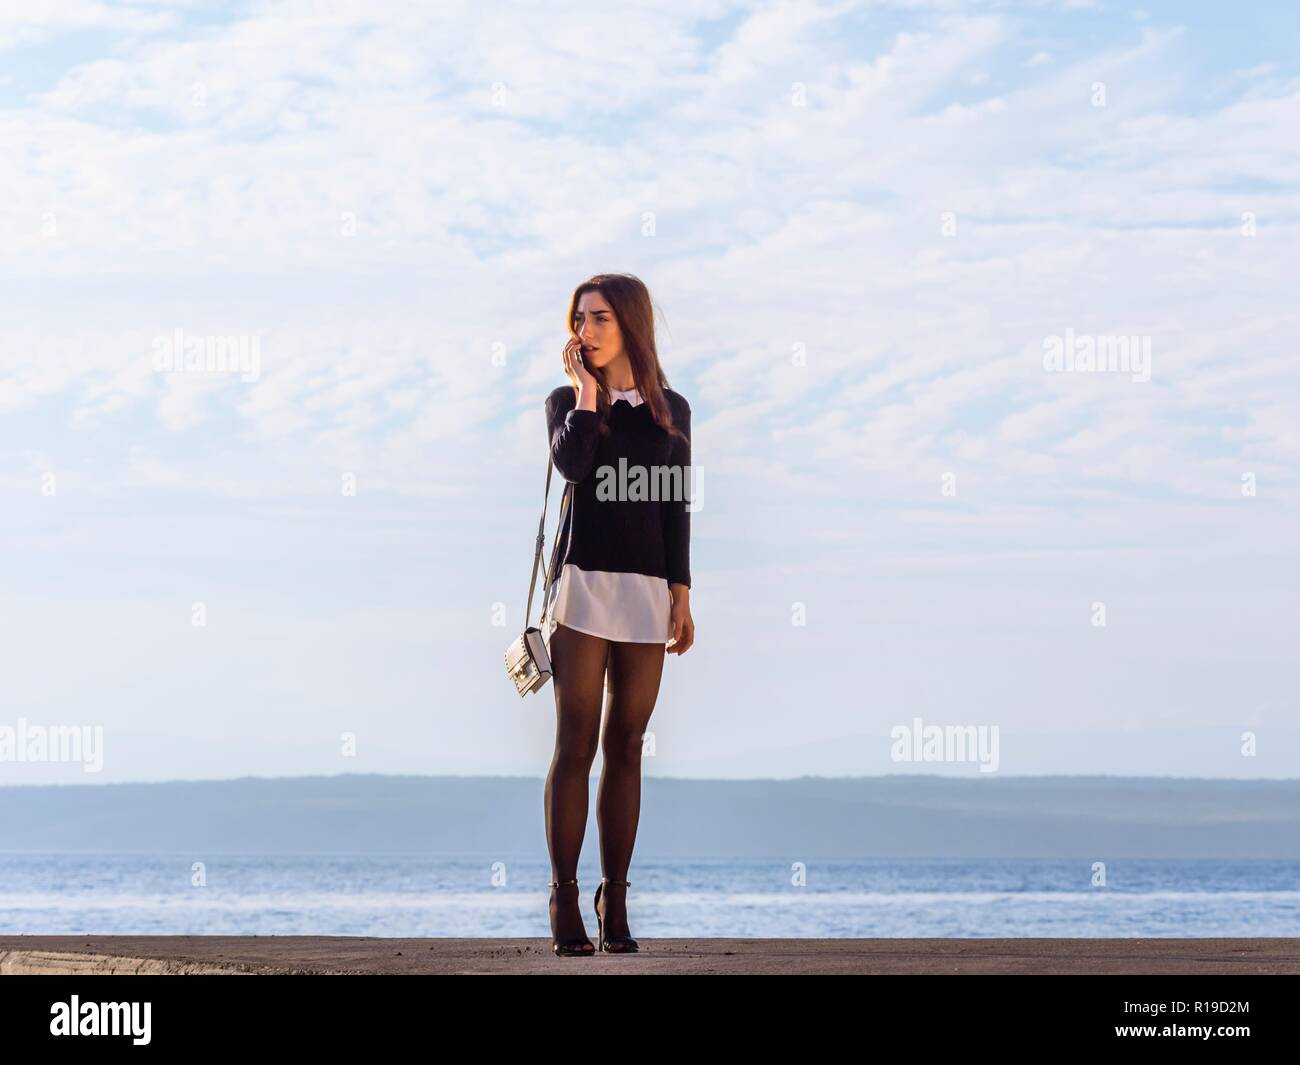 Standing teen girl outside full length Black tights - Stock Image